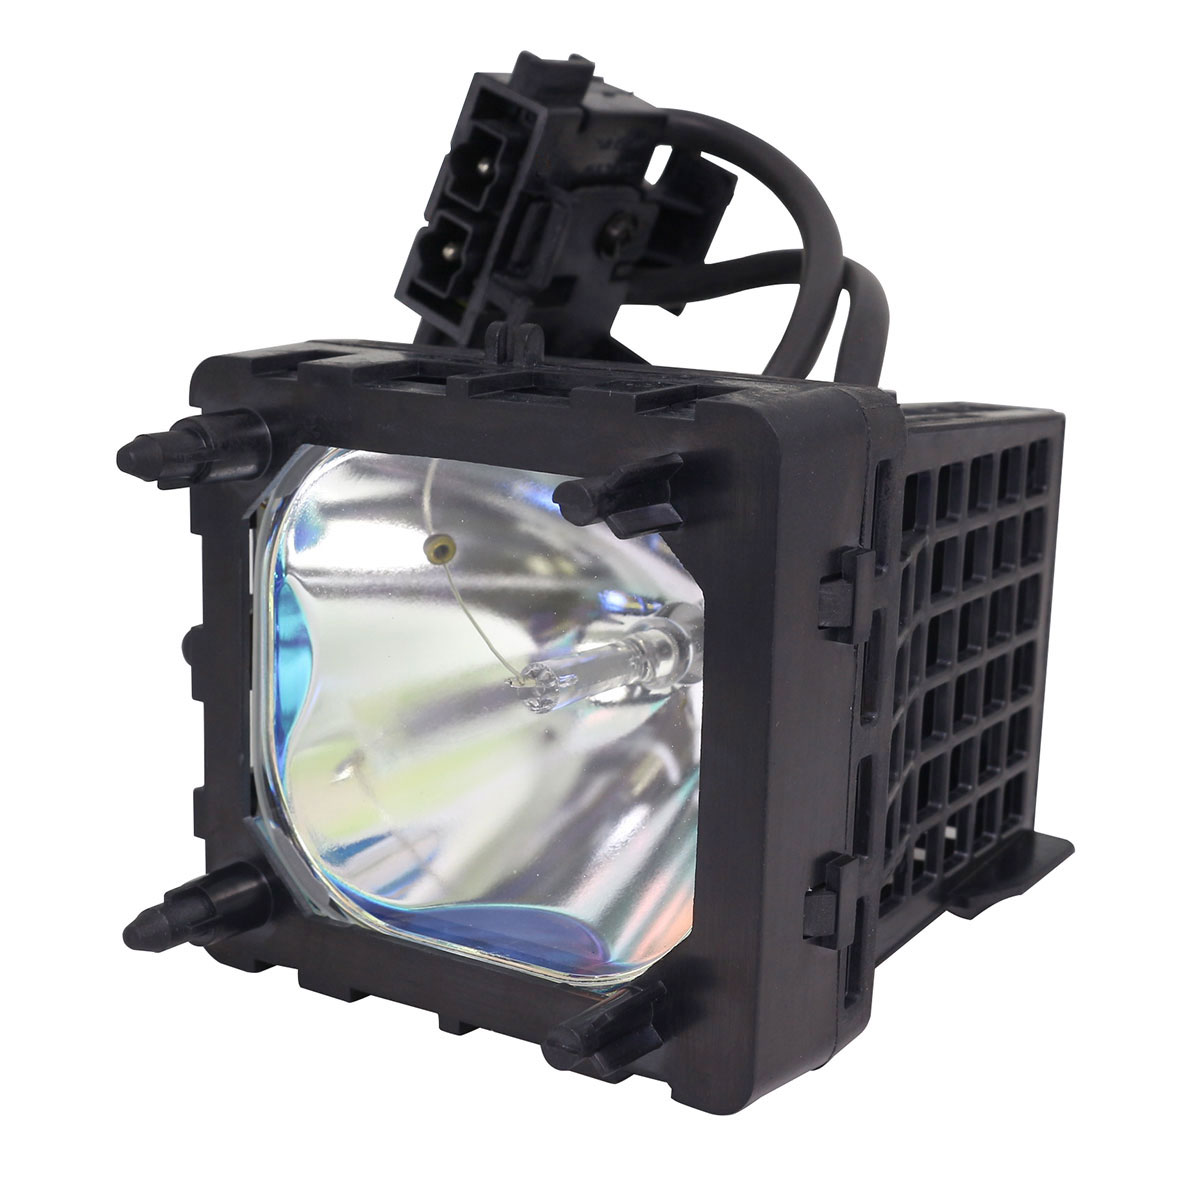 Osram Neolux Lamp Housing For Sony KDS50A2020 Projection ...